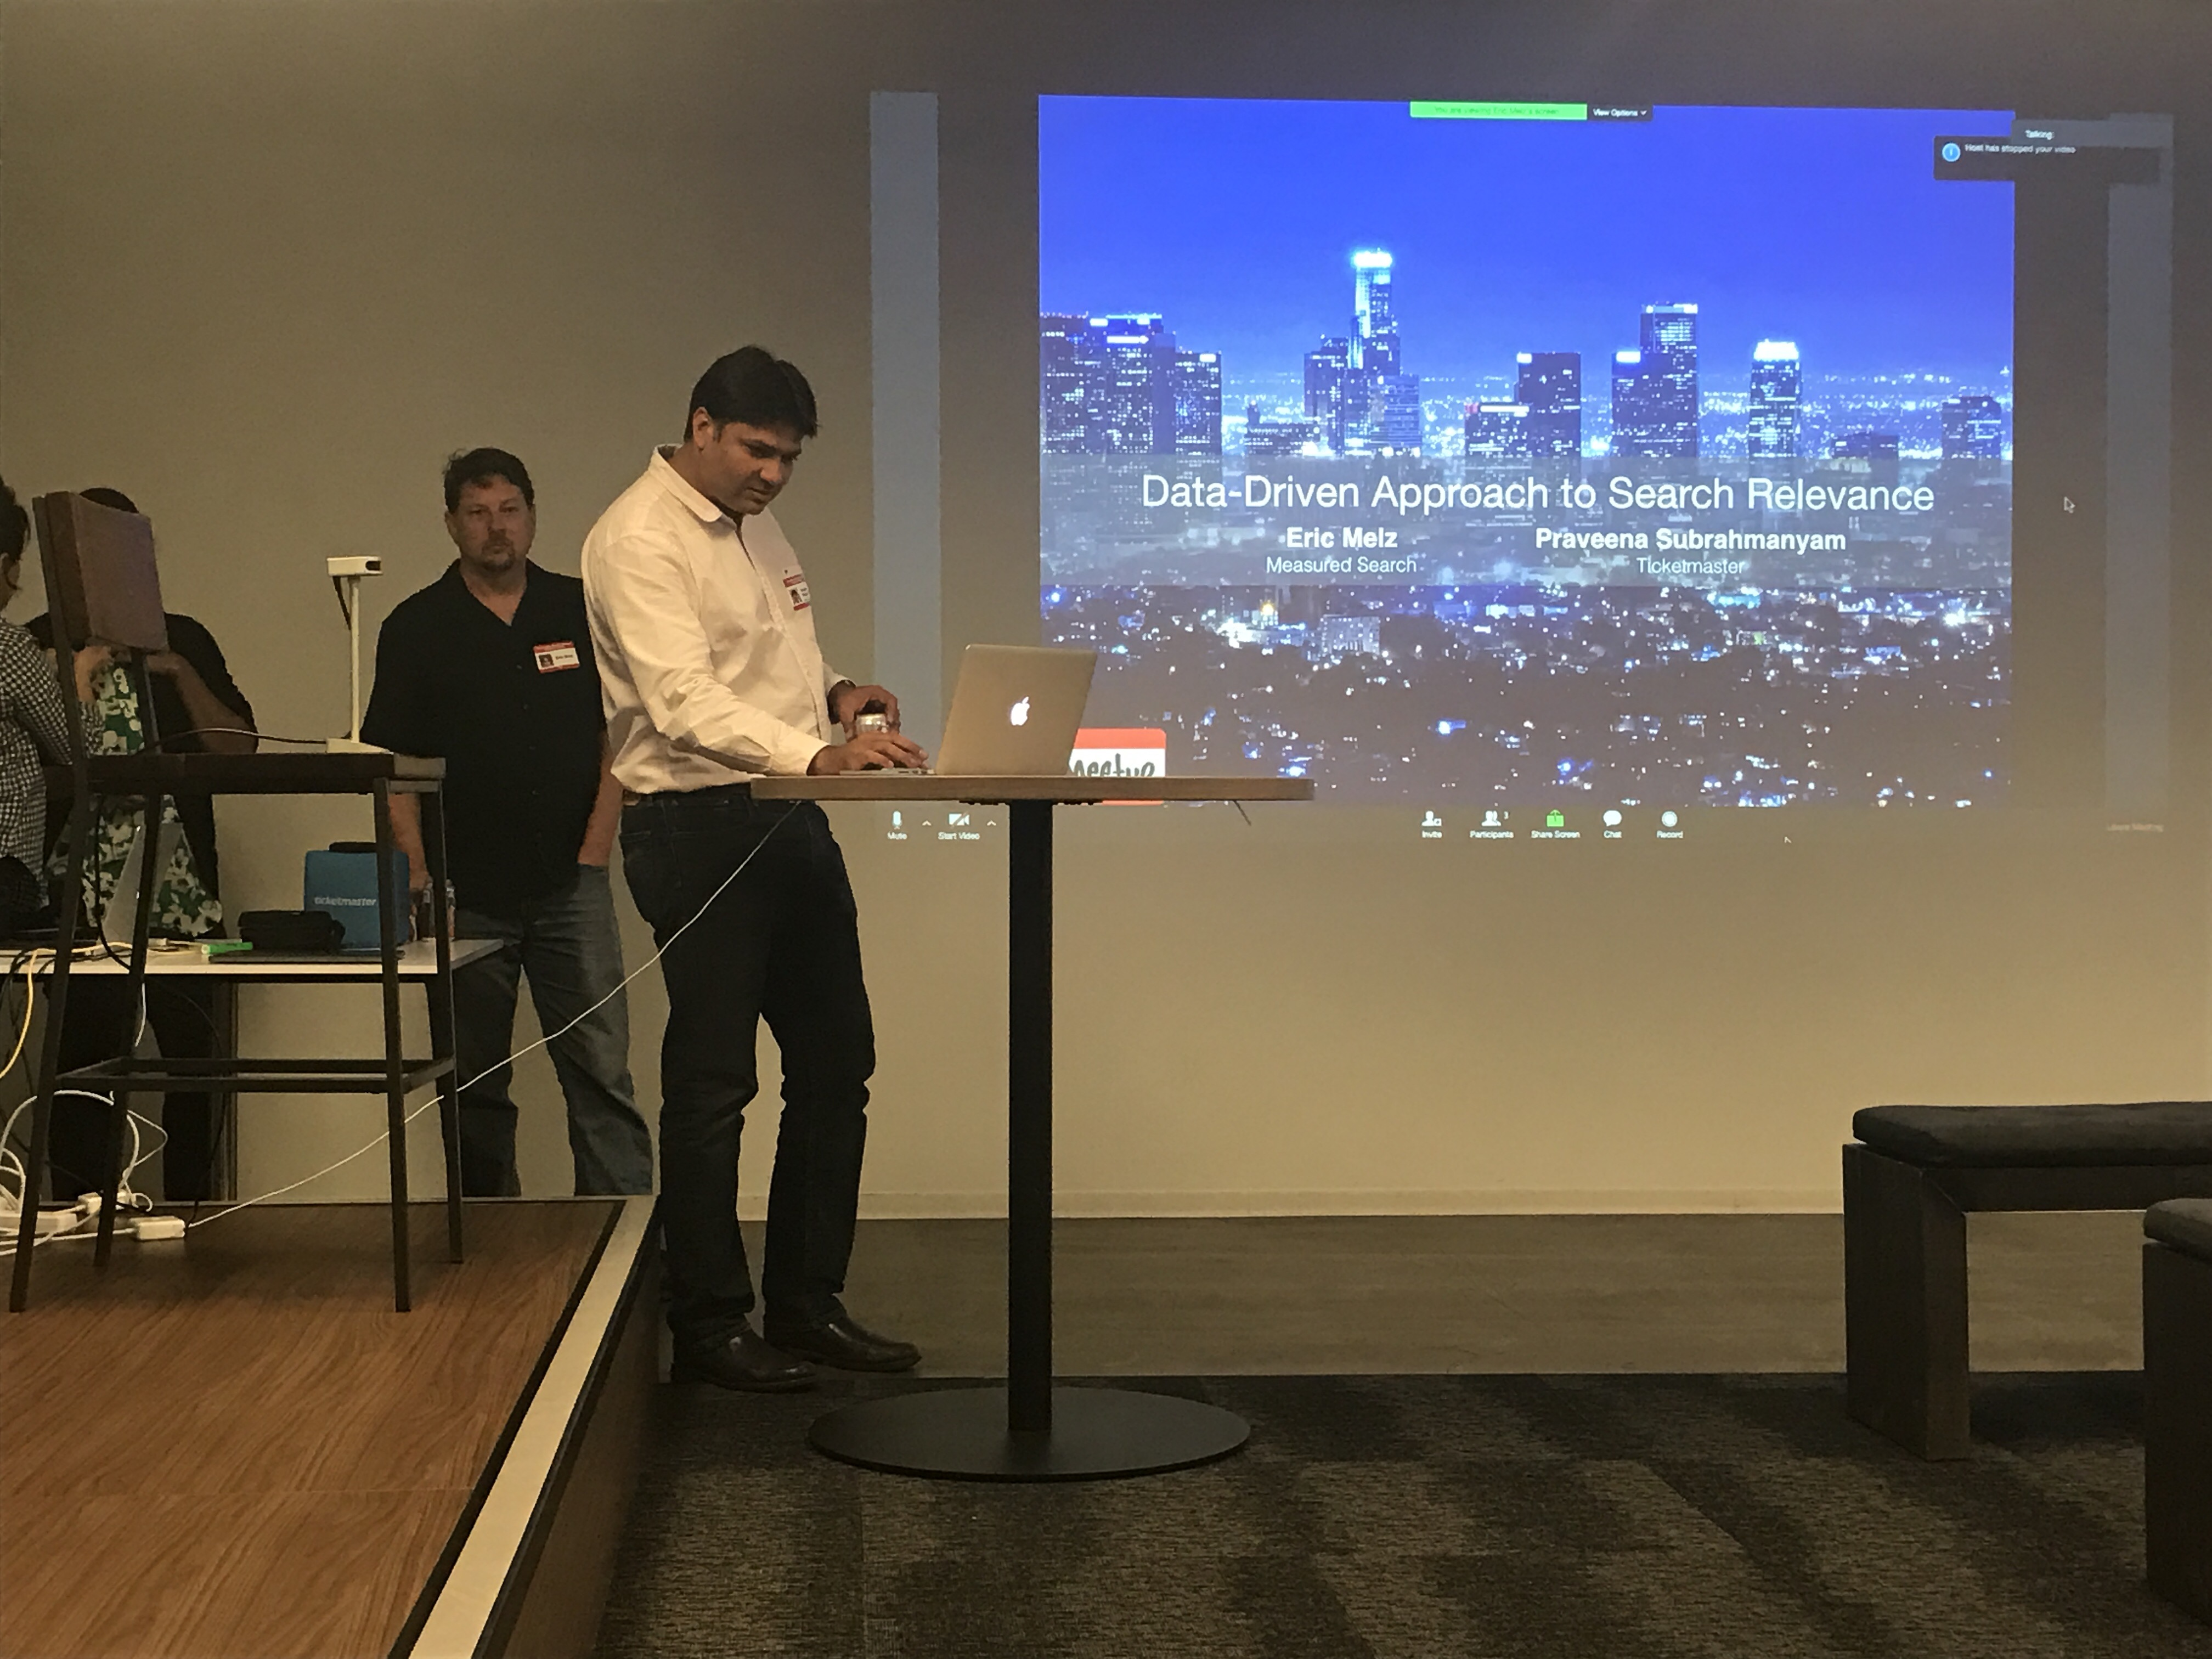 MeetUp: Data-Driven Approach to Search Relevance at Ticketmaster